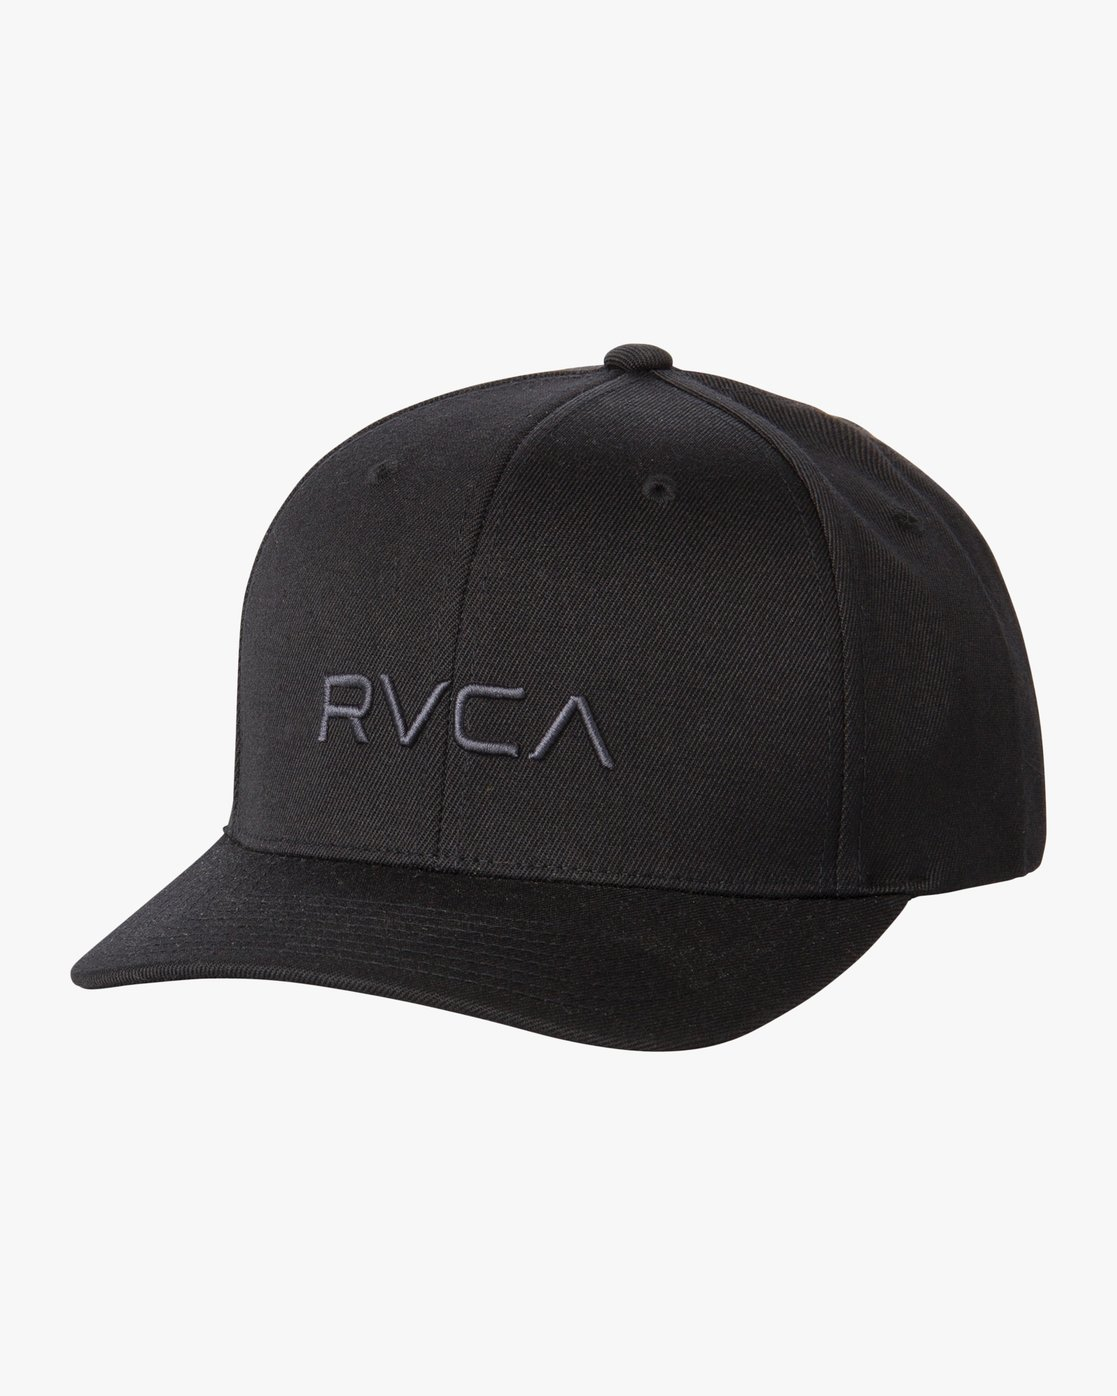 0 RVCA Flex Fit Baseball Hat Black MHAHWRFF RVCA a6a06ce03431